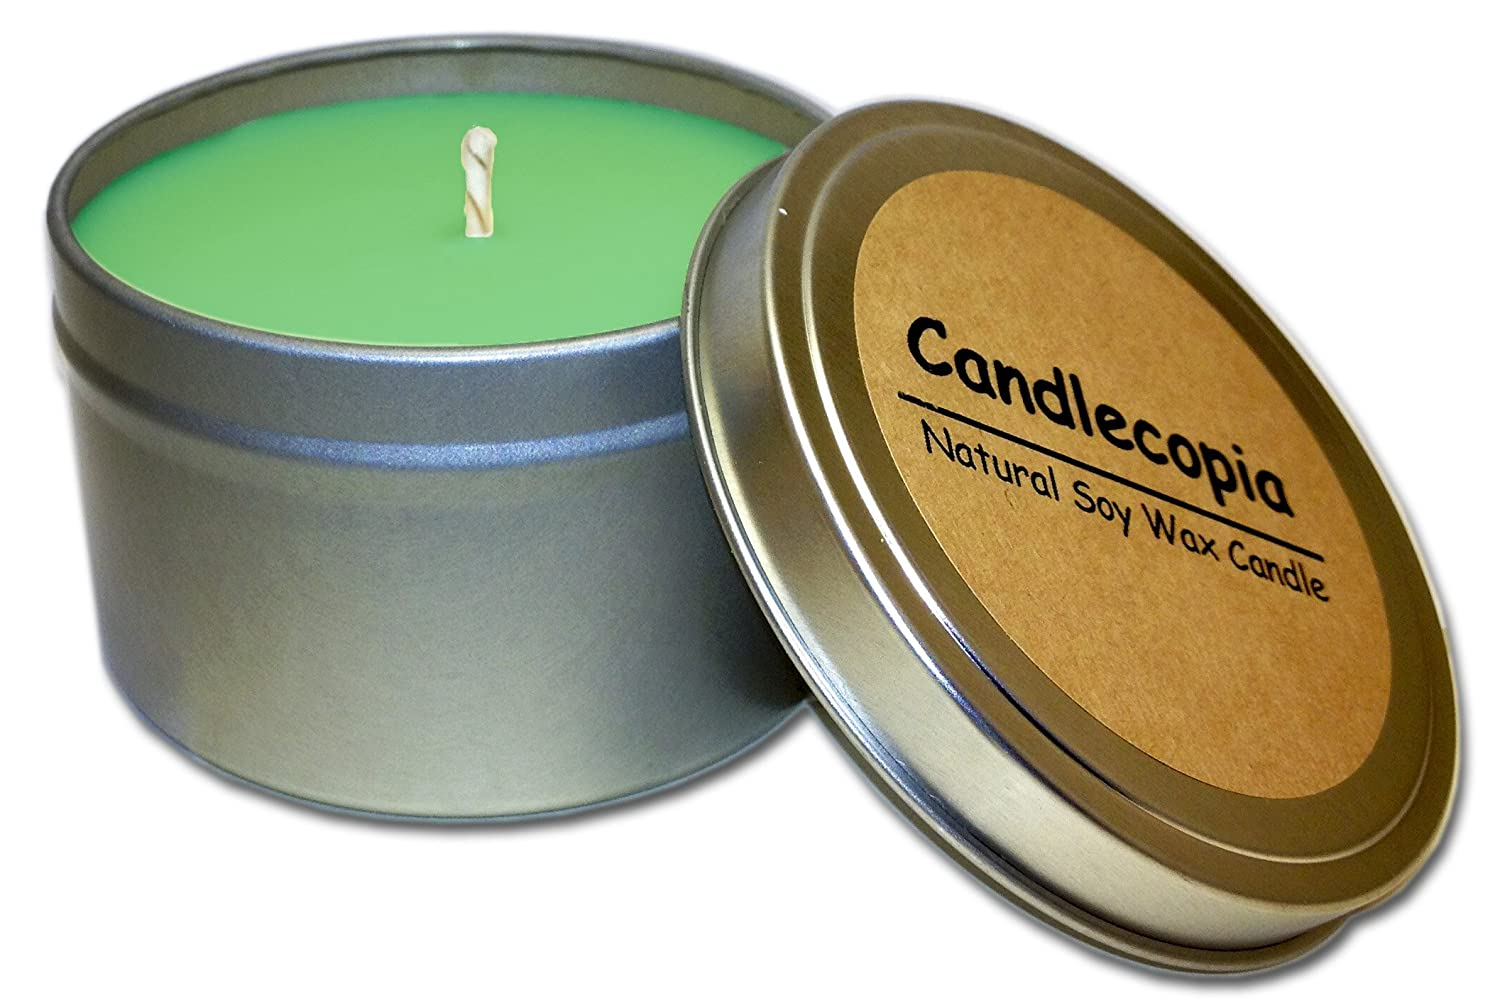 Candlecopia Mistletoe Strongly Scented Sustainable Vegan Natural Soy Travel Tin Candle TIN-EVERG-8Z